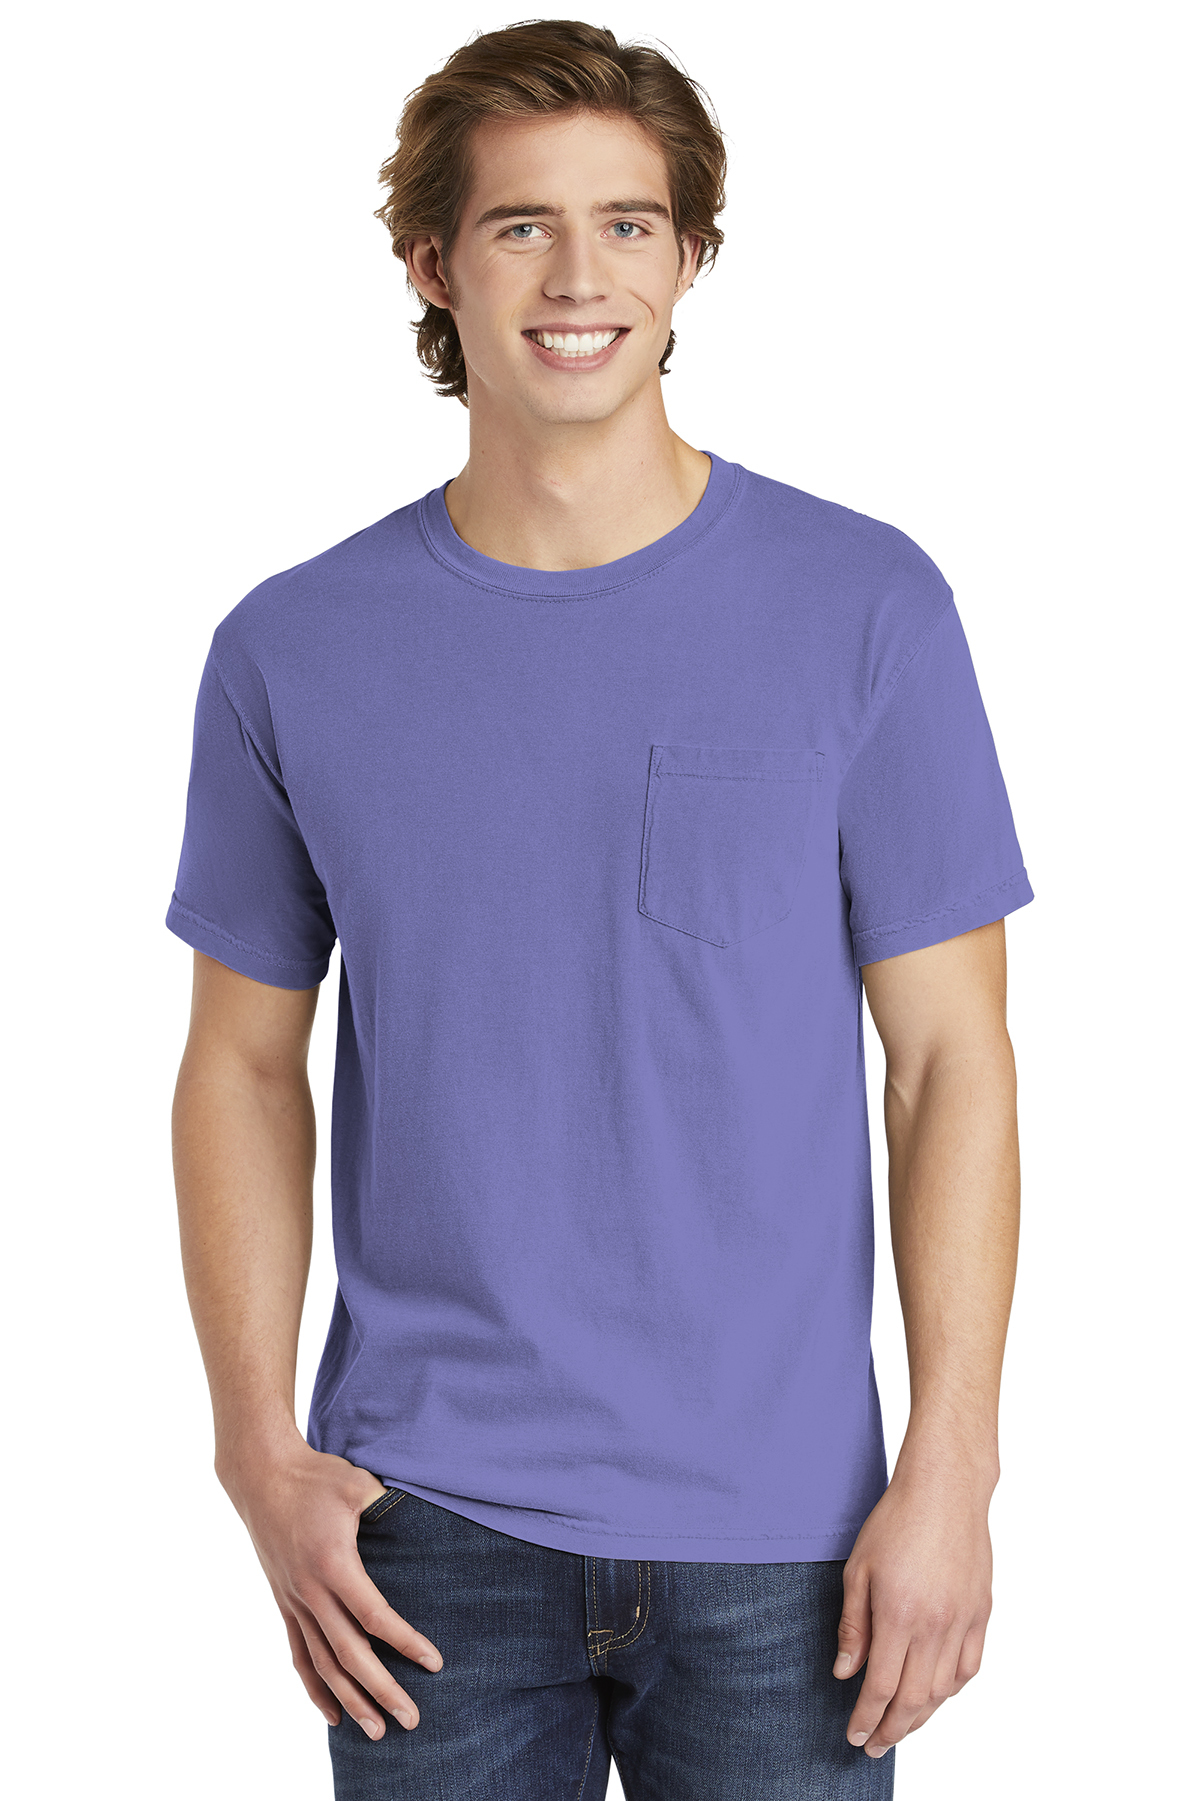 ab45a3b22 Comfort Colors ® Heavyweight Ring Spun Pocket Tee | 6-6.1 100 ...